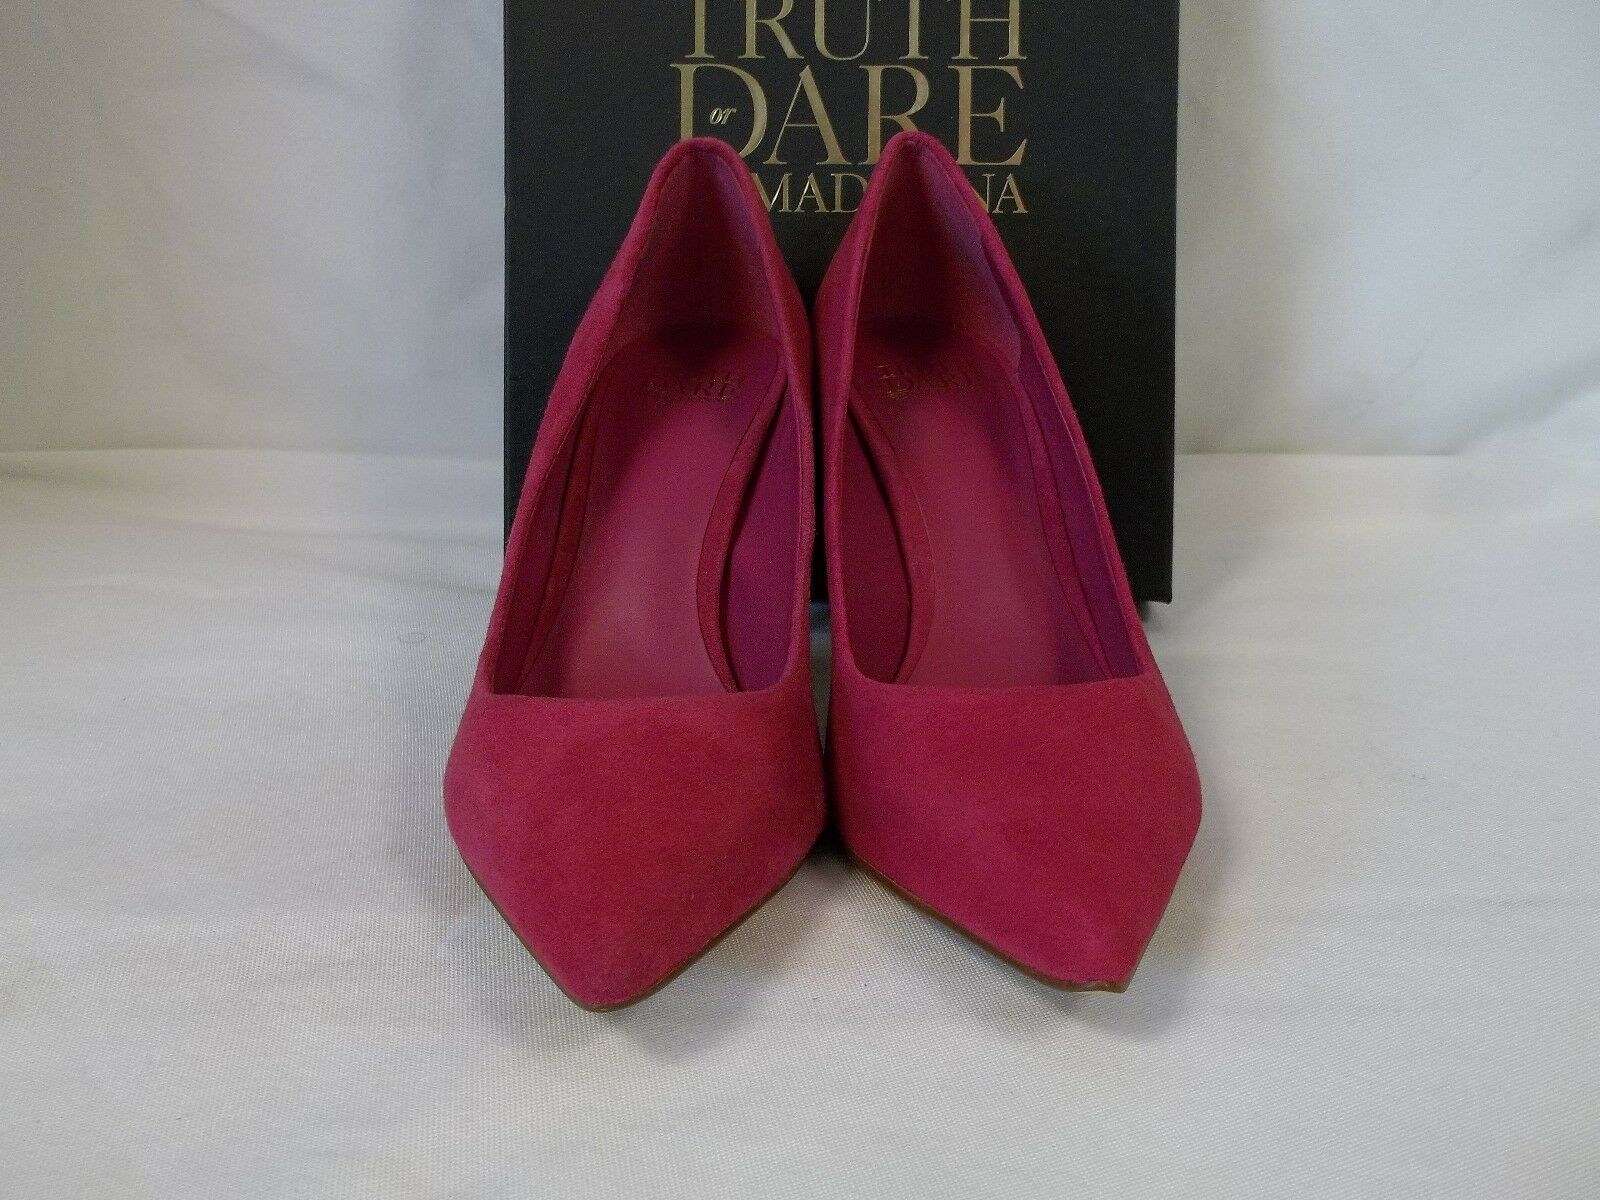 Truth Or Dare By MaDamens Größe 10 Heels M Omarah Fuchsia Suede Heels 10 New Damenschuhe Schuhes 785869